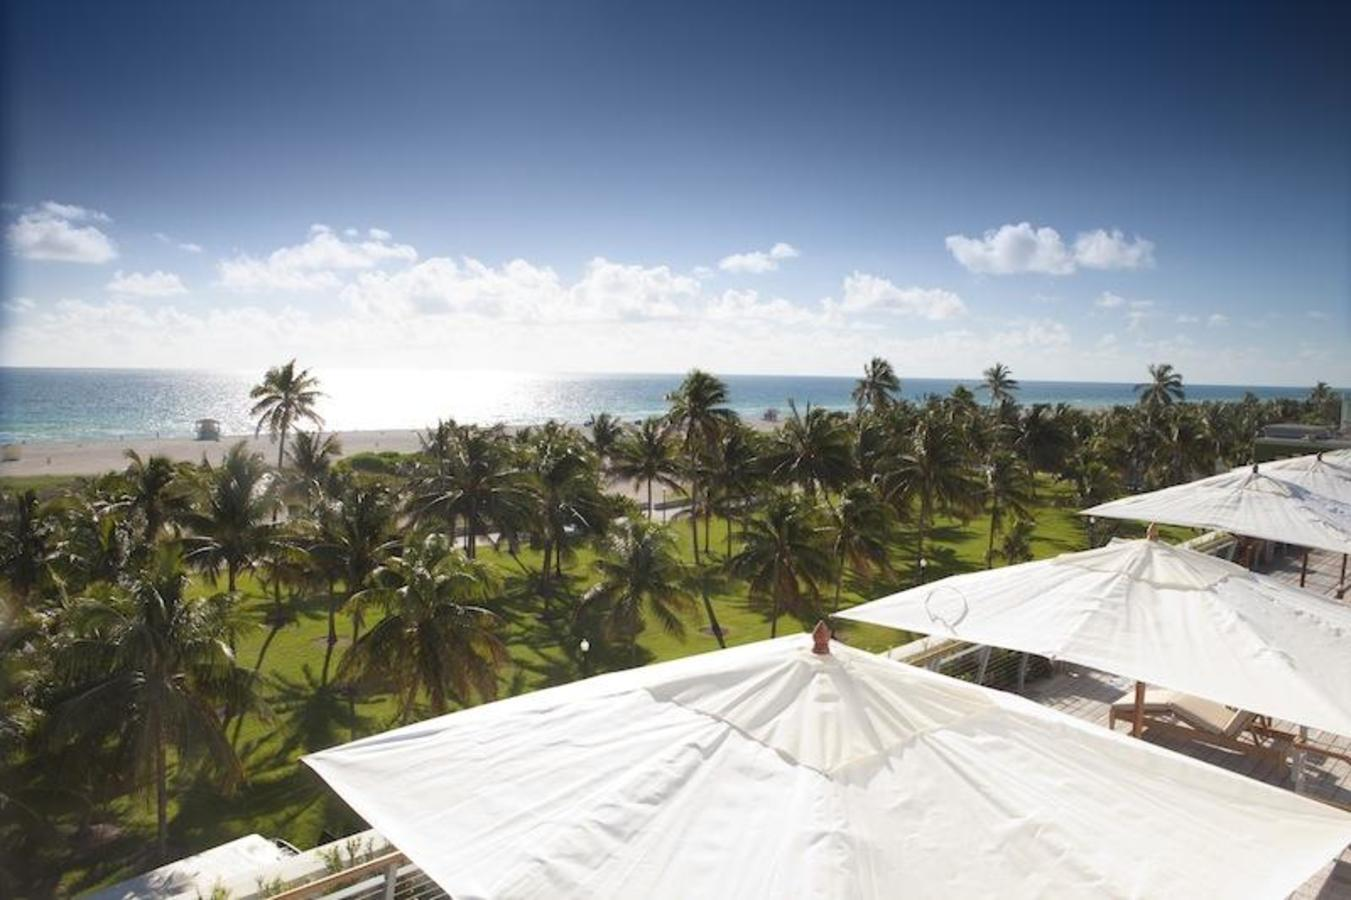 Breathtaking views from The Deck at The Betsy - South Beach